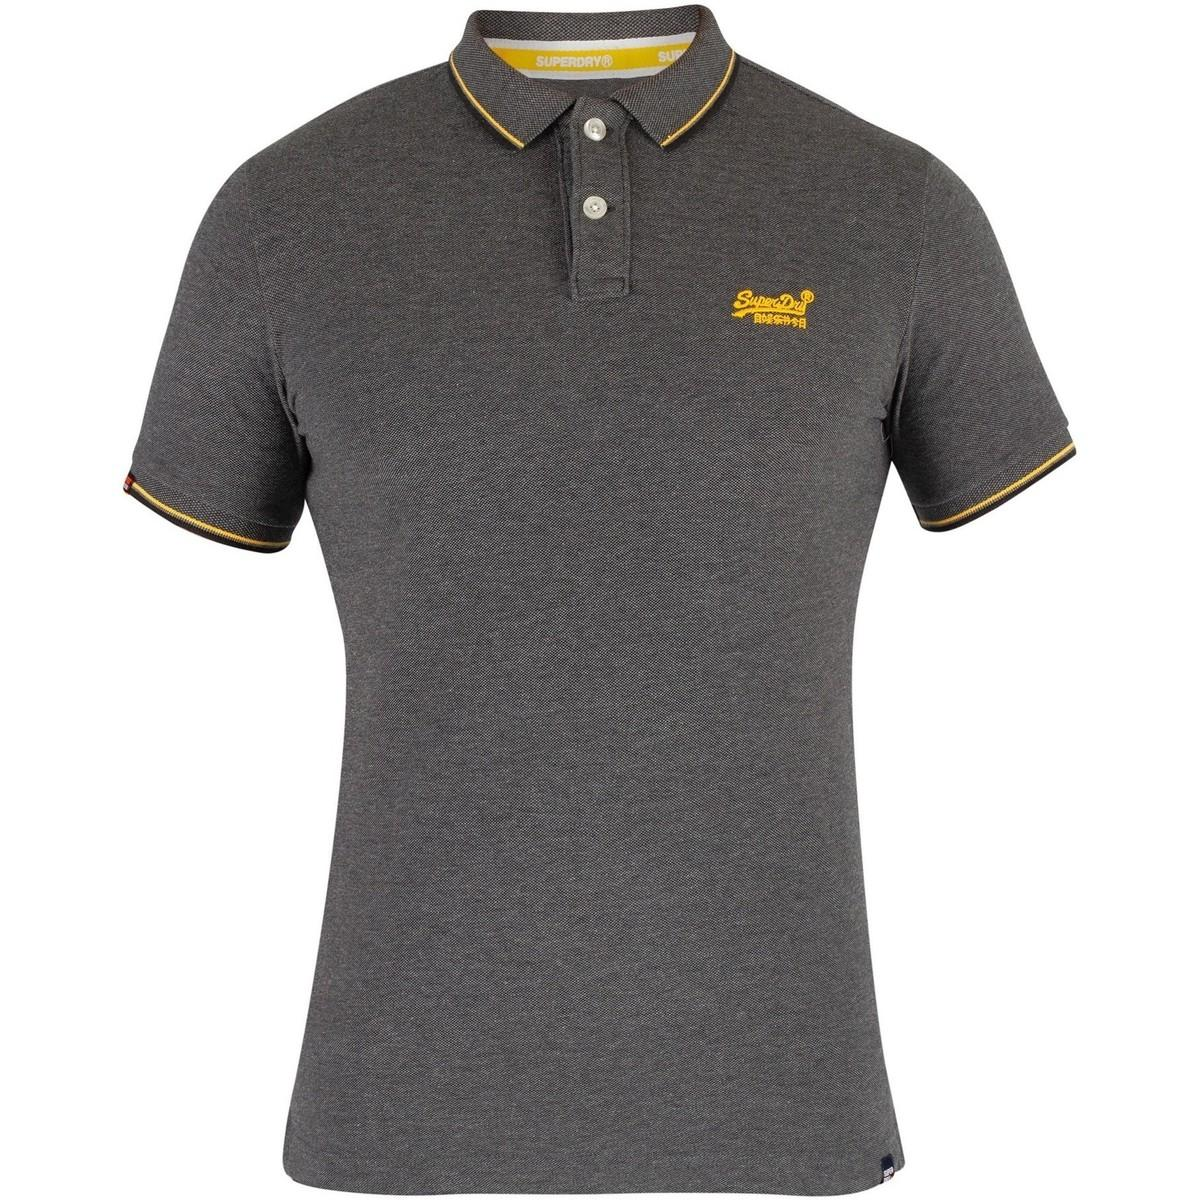 6579818bcb87 ... Classic Poolside Pique Poloshirt, Grey Men's Polo Shirt In Grey for.  View fullscreen